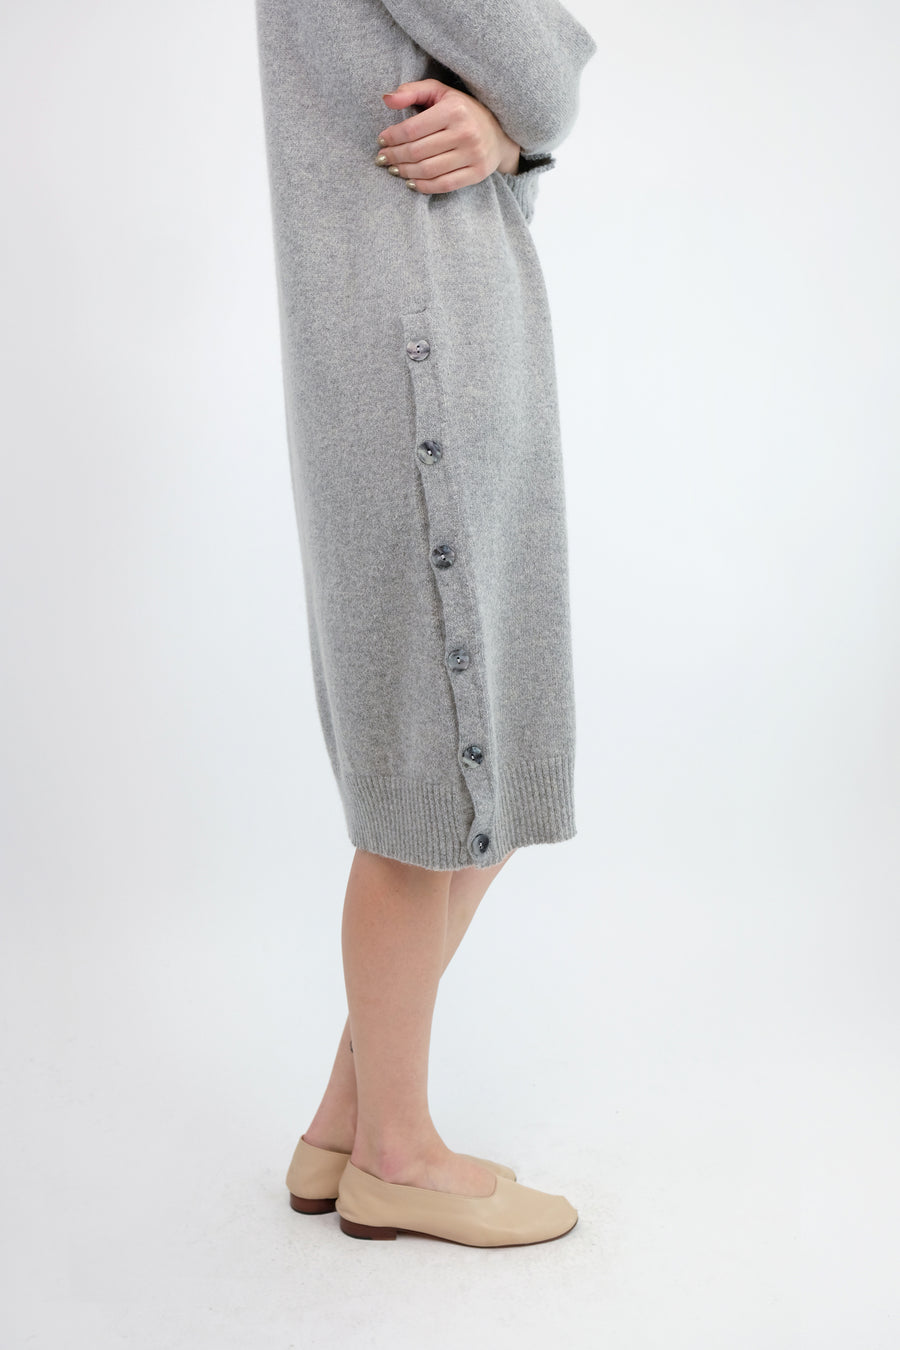 Cloud Grey Lou Sweater Dress